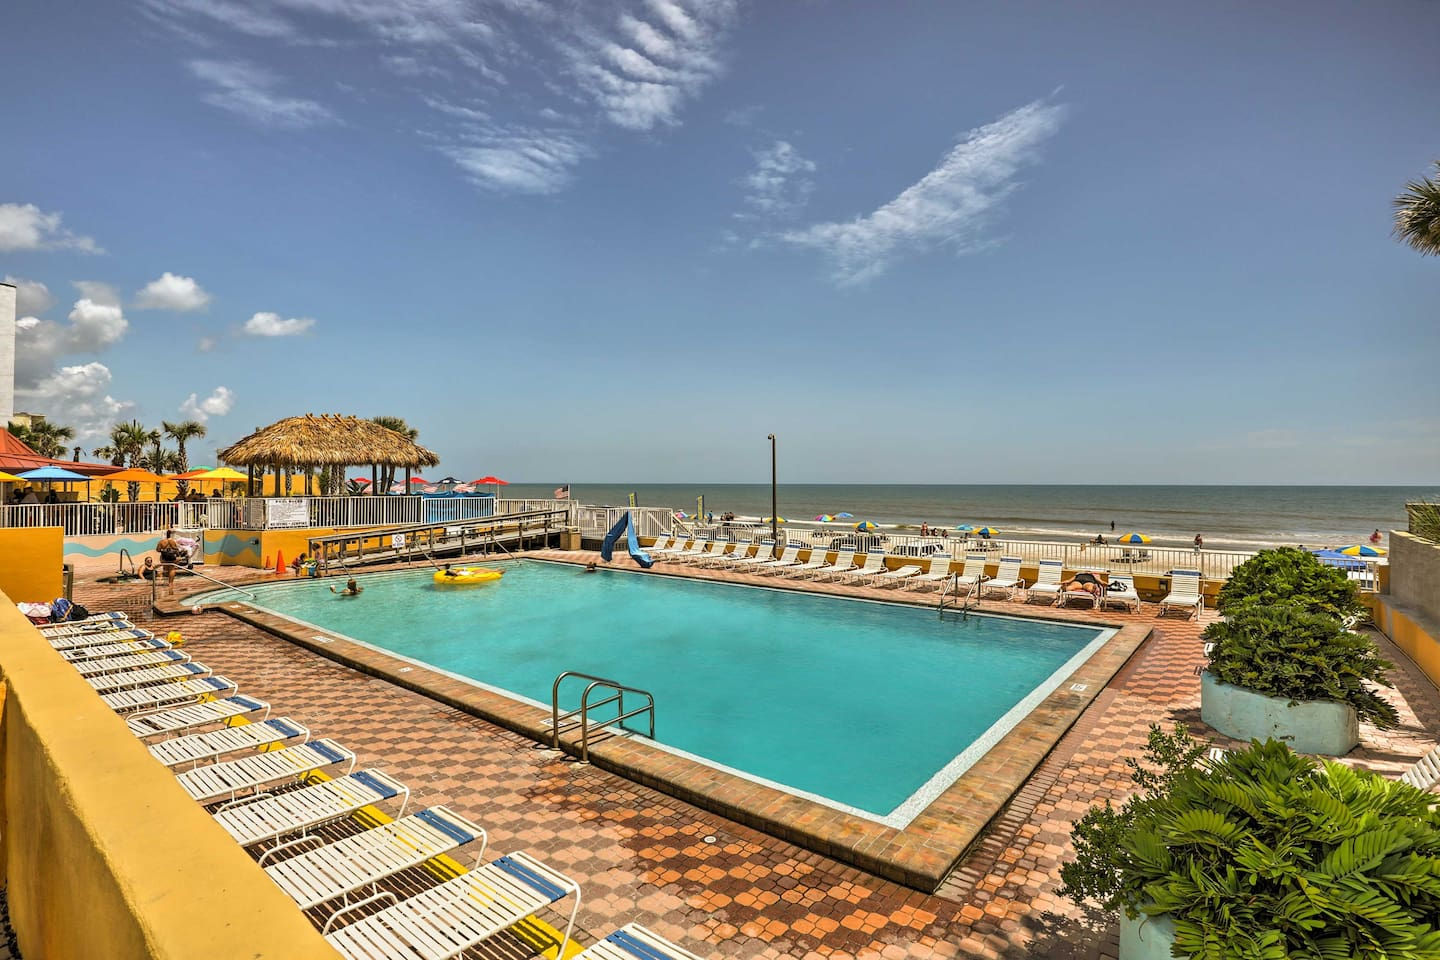 Dive into your next vacation at this Daytona beachfront resort property!